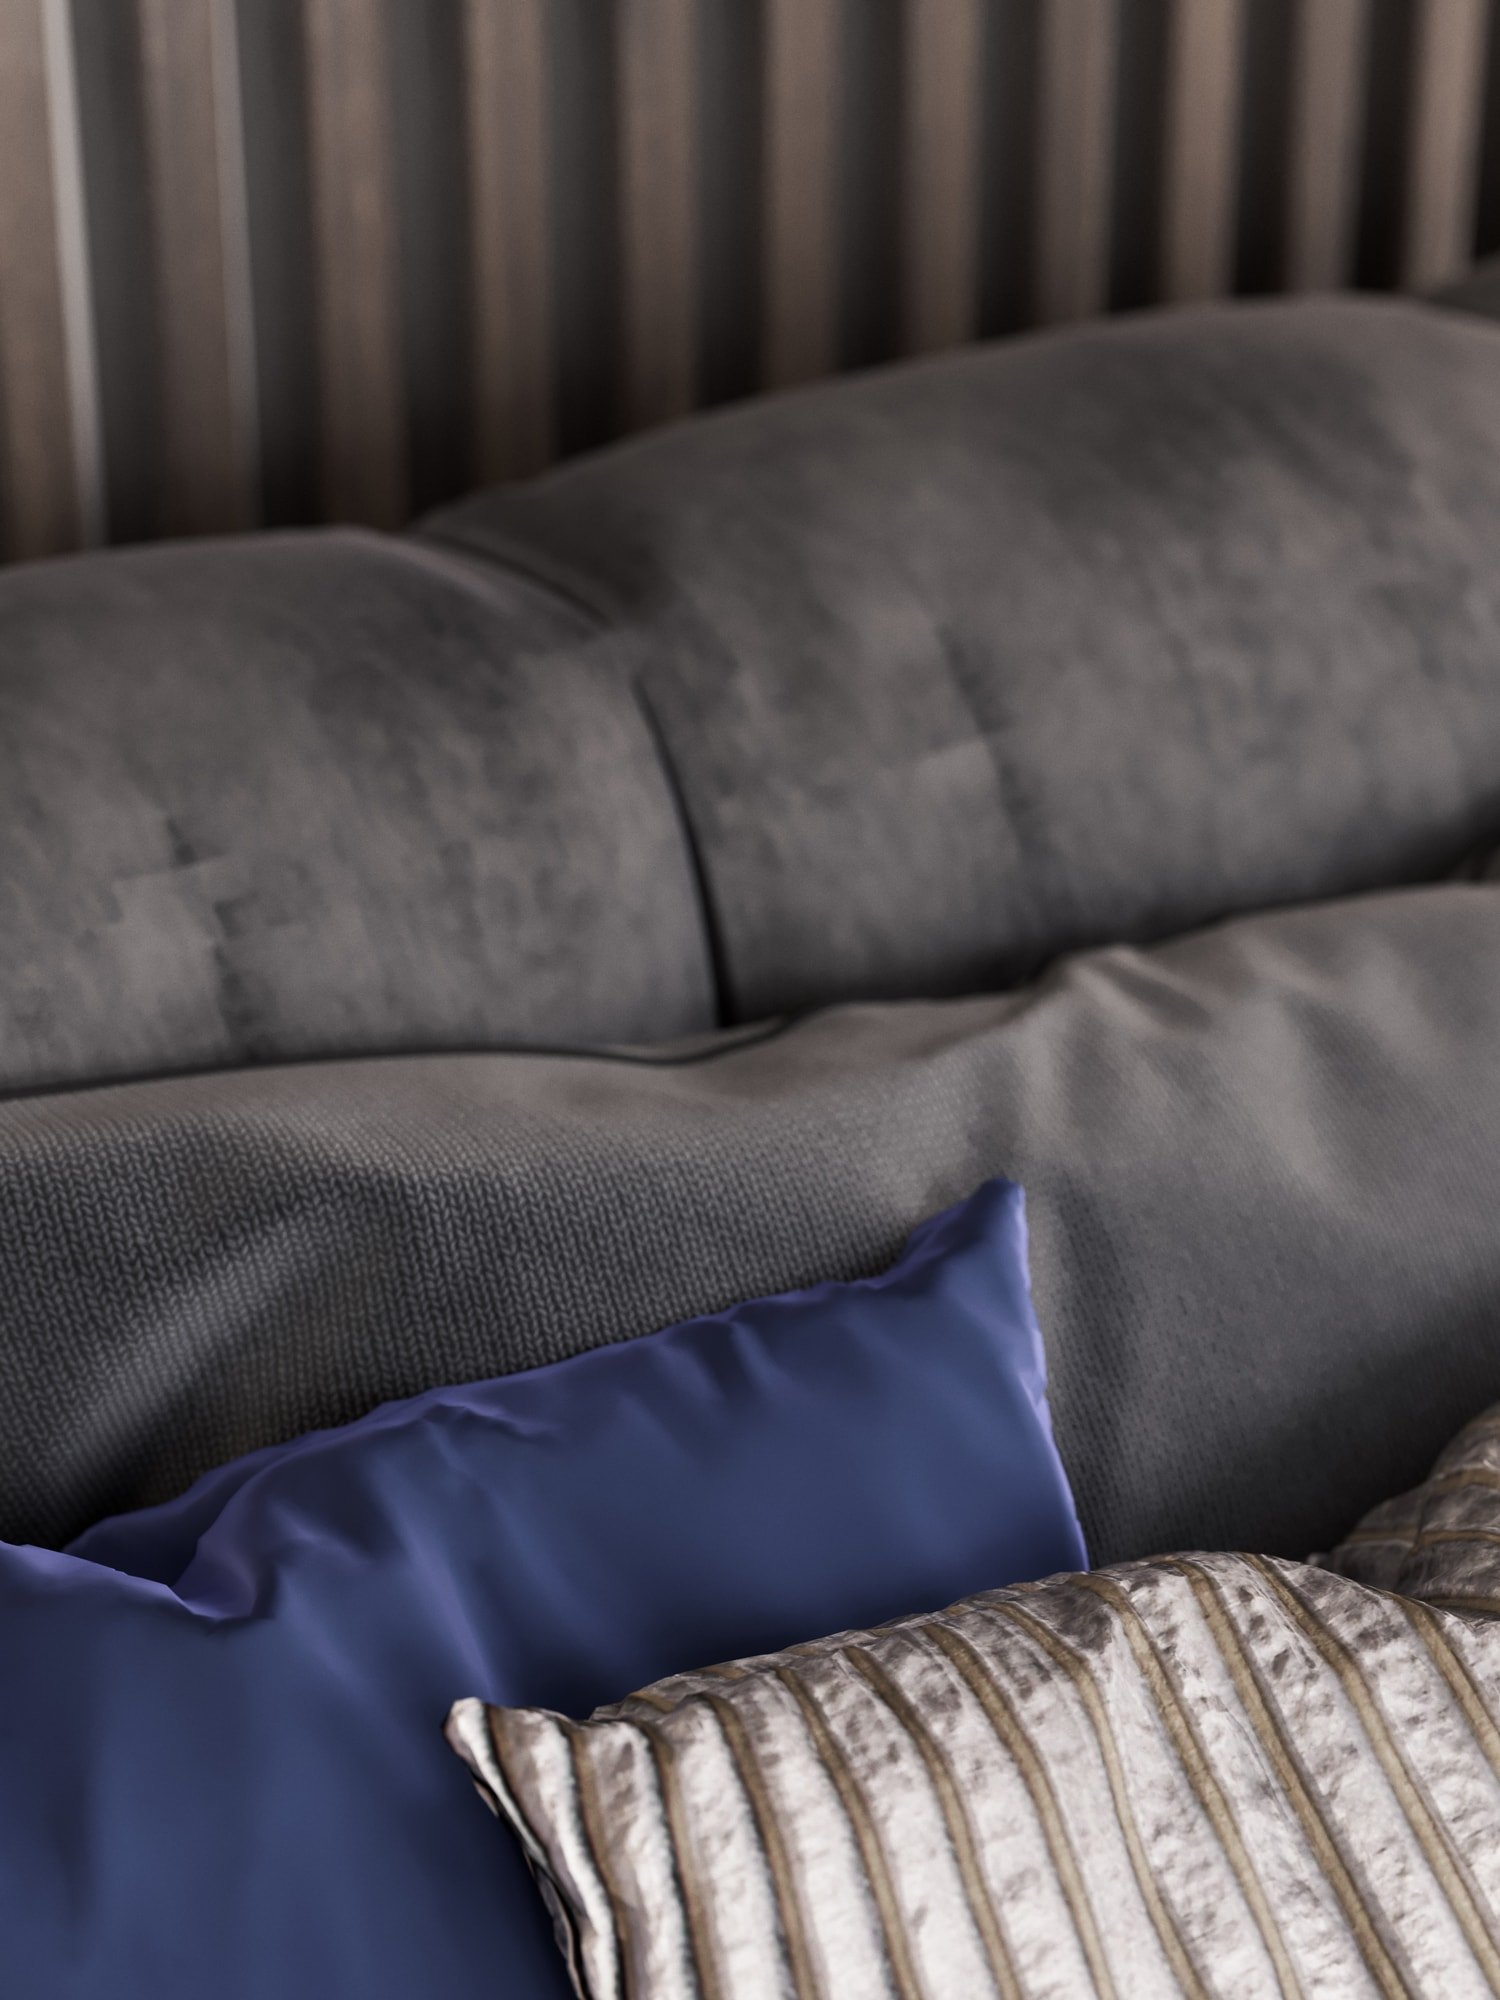 Close up of the textured pillows and velvet headboard of a luxurious bed. Part of the dynamic creative pack.